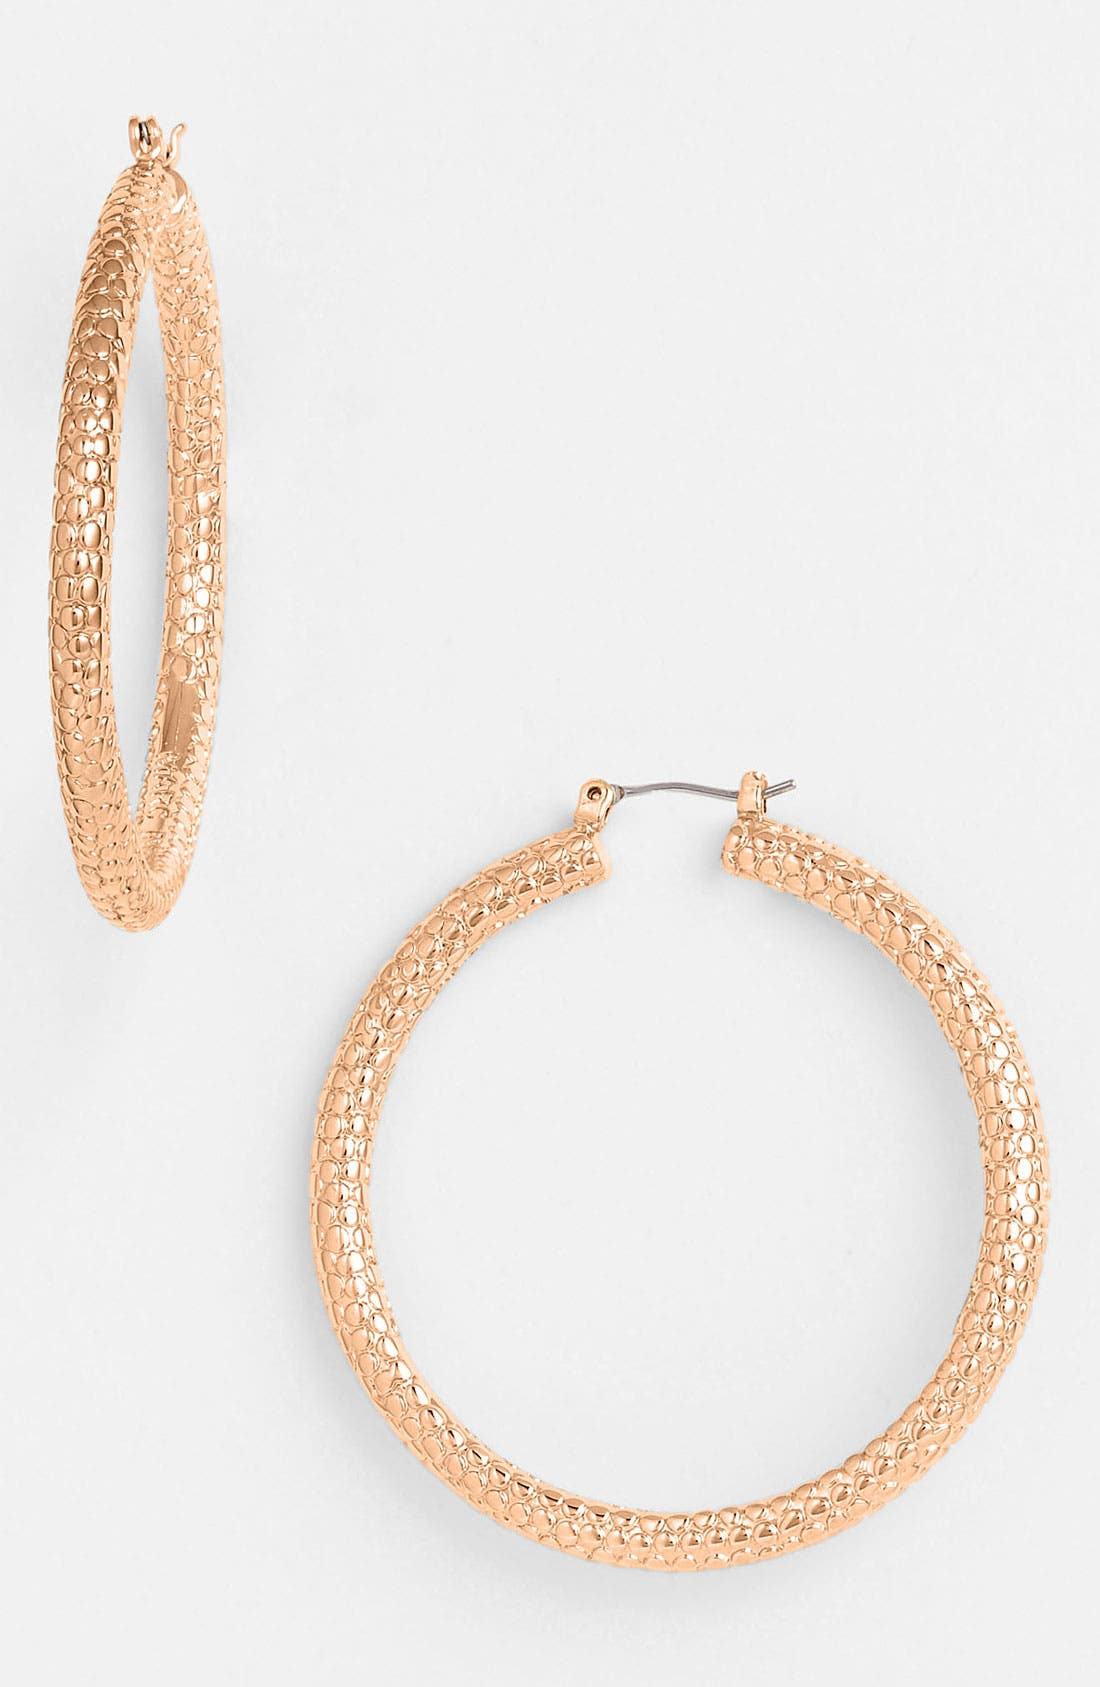 Alternate Image 1 Selected - MARC BY MARC JACOBS 'Lizard' Hoop Earrings